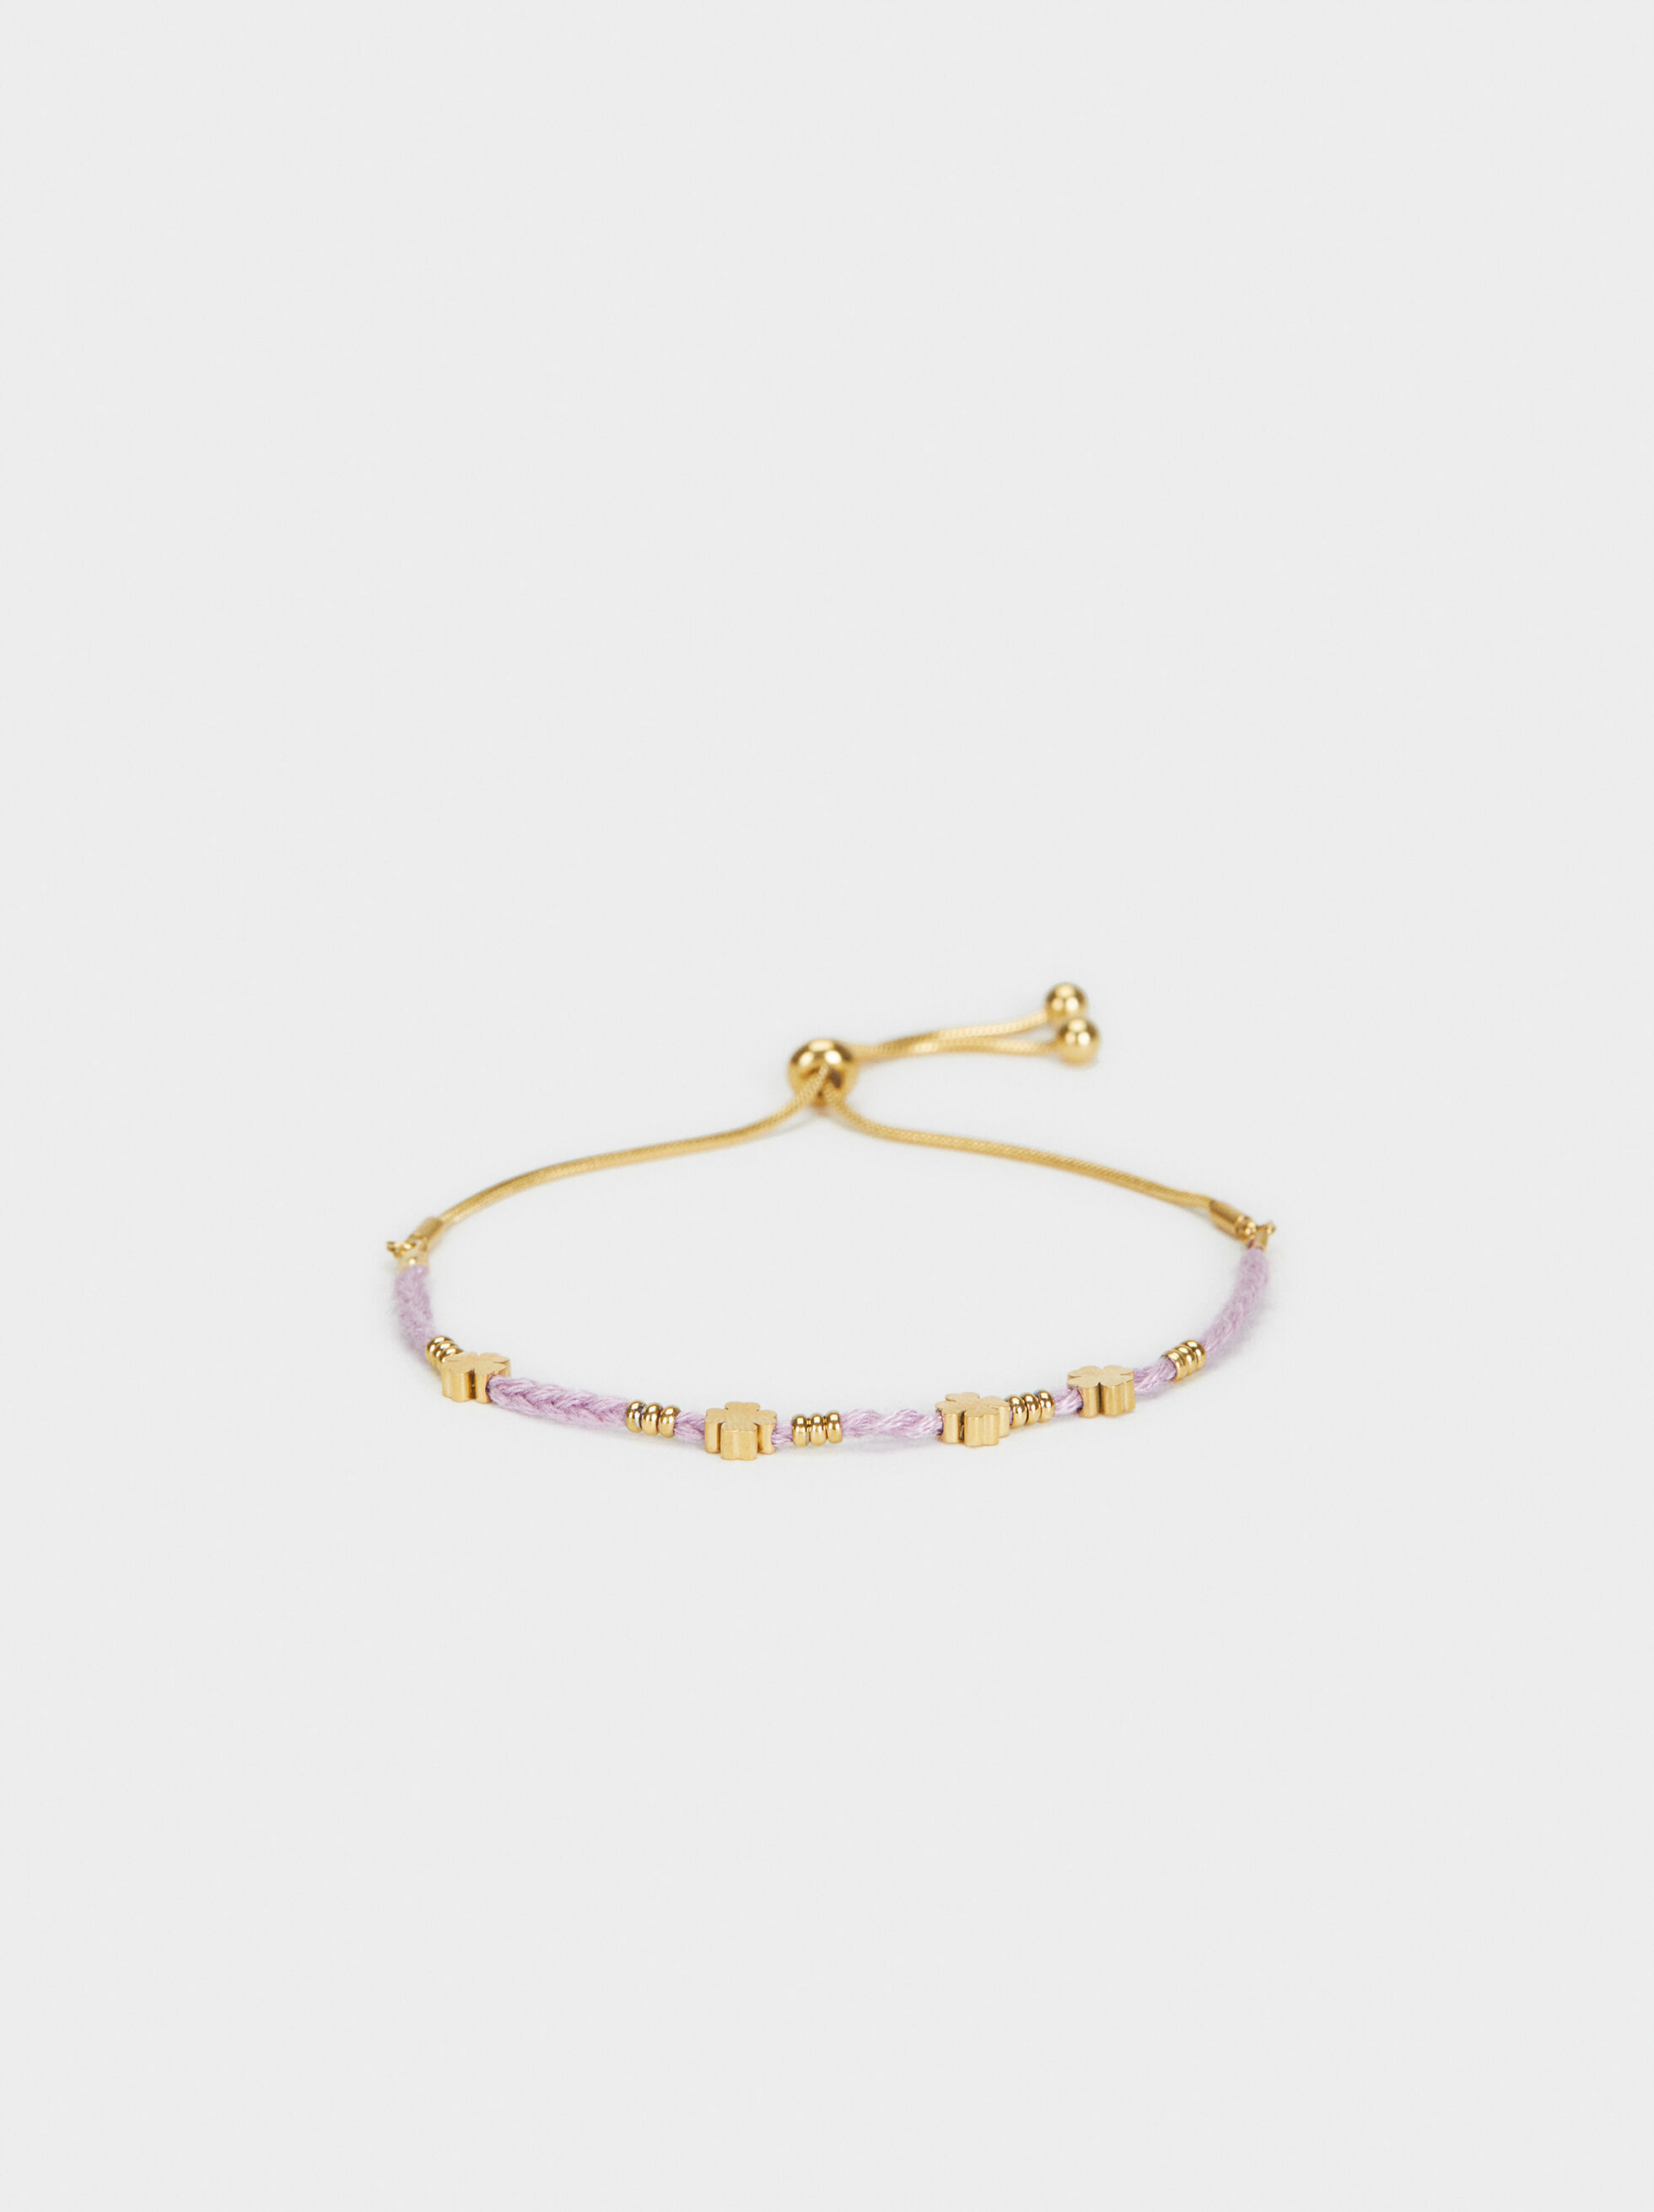 Stainless Steel Gold Adjustable Bracelet, Violet, hi-res